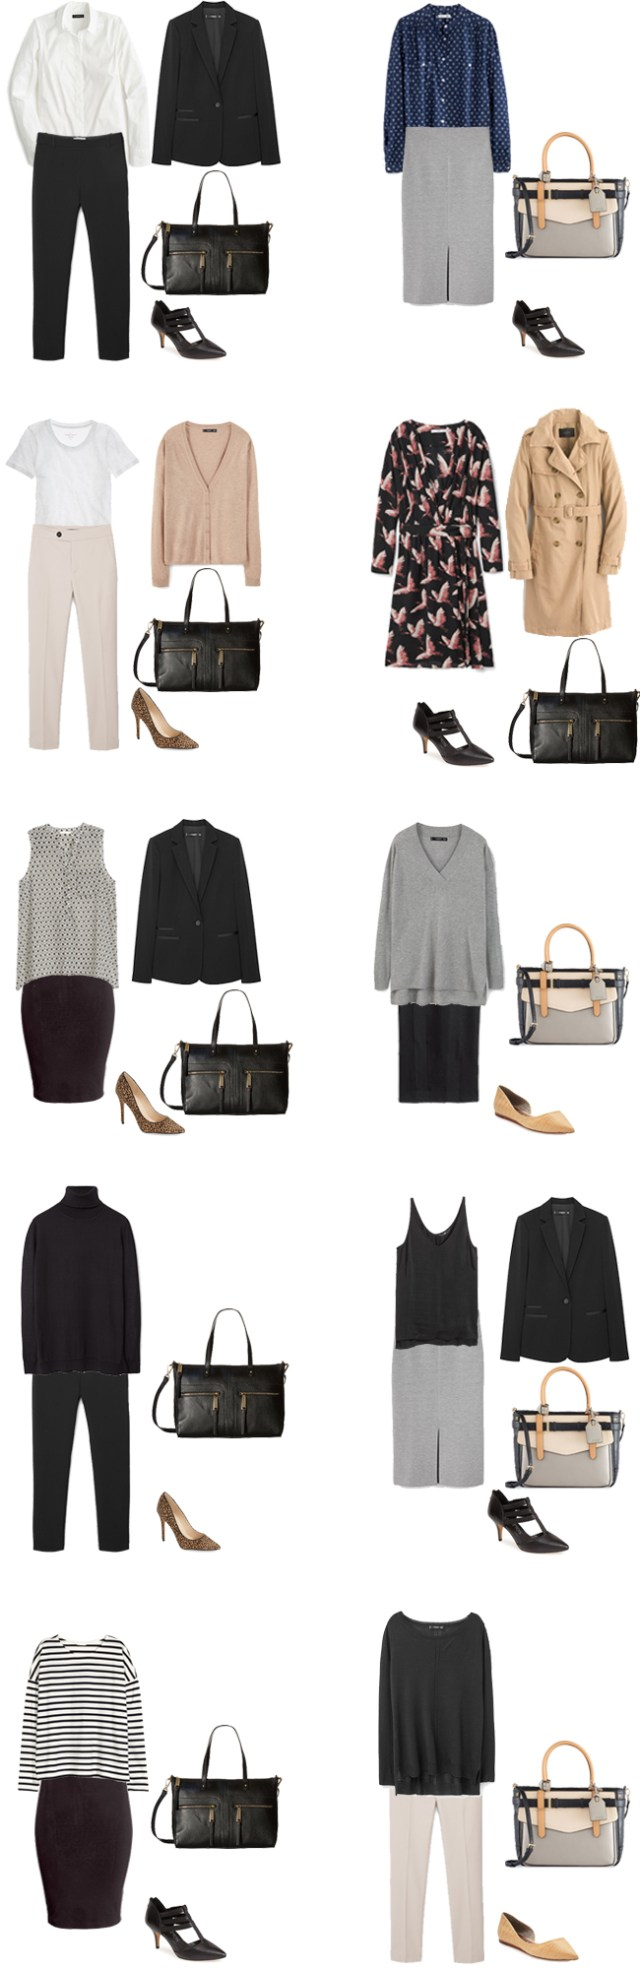 Basic Work Capsule Outfits 1-10 #capsulewardrobe #workwardrobe #workwear #capsule